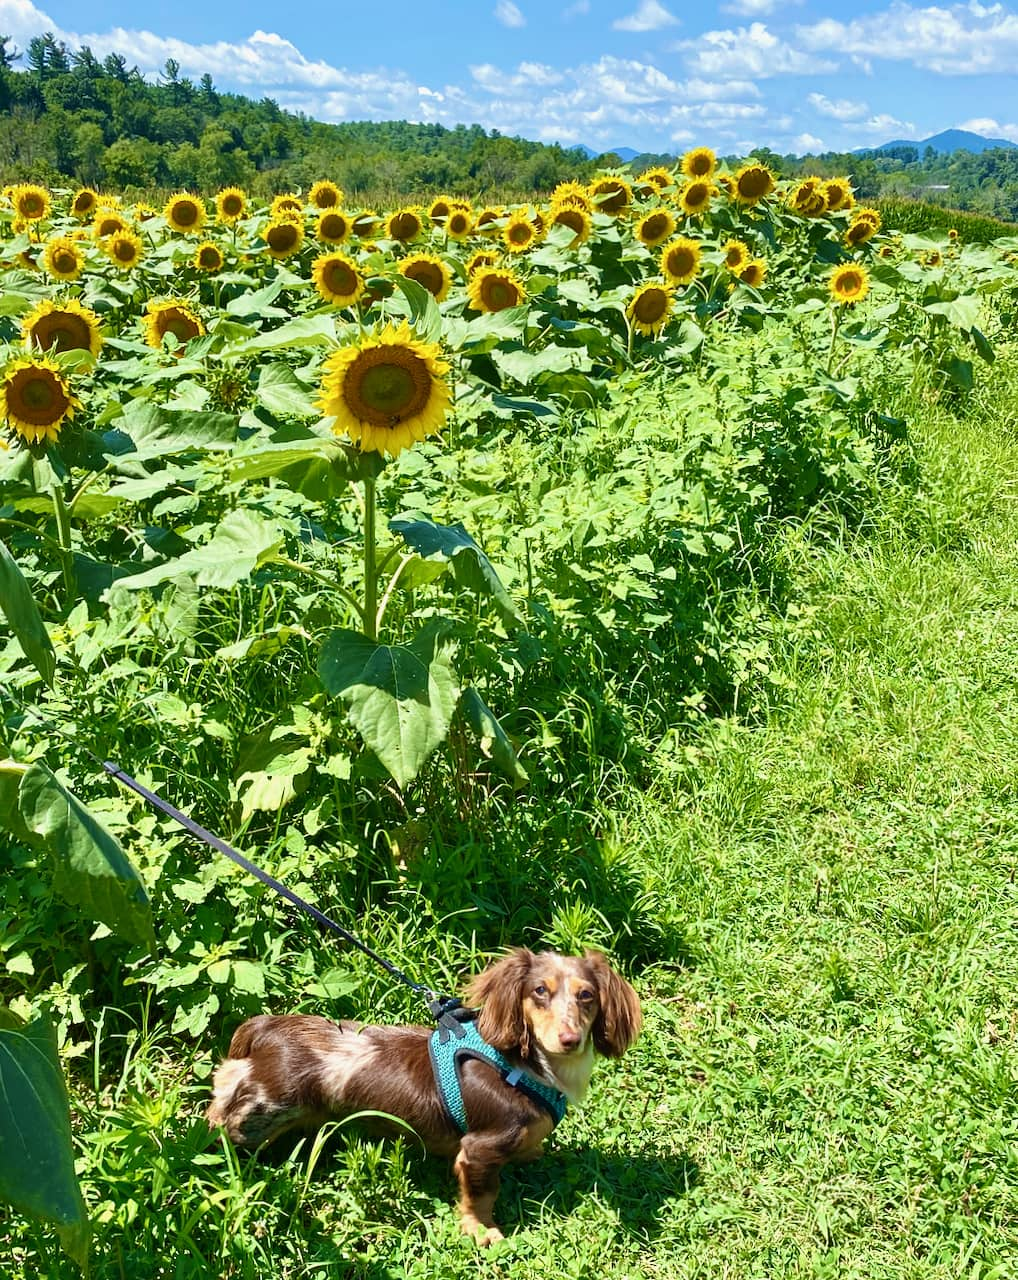 Reesey, the dapple dachshund in the field of sunflowers at Biltmore Estate